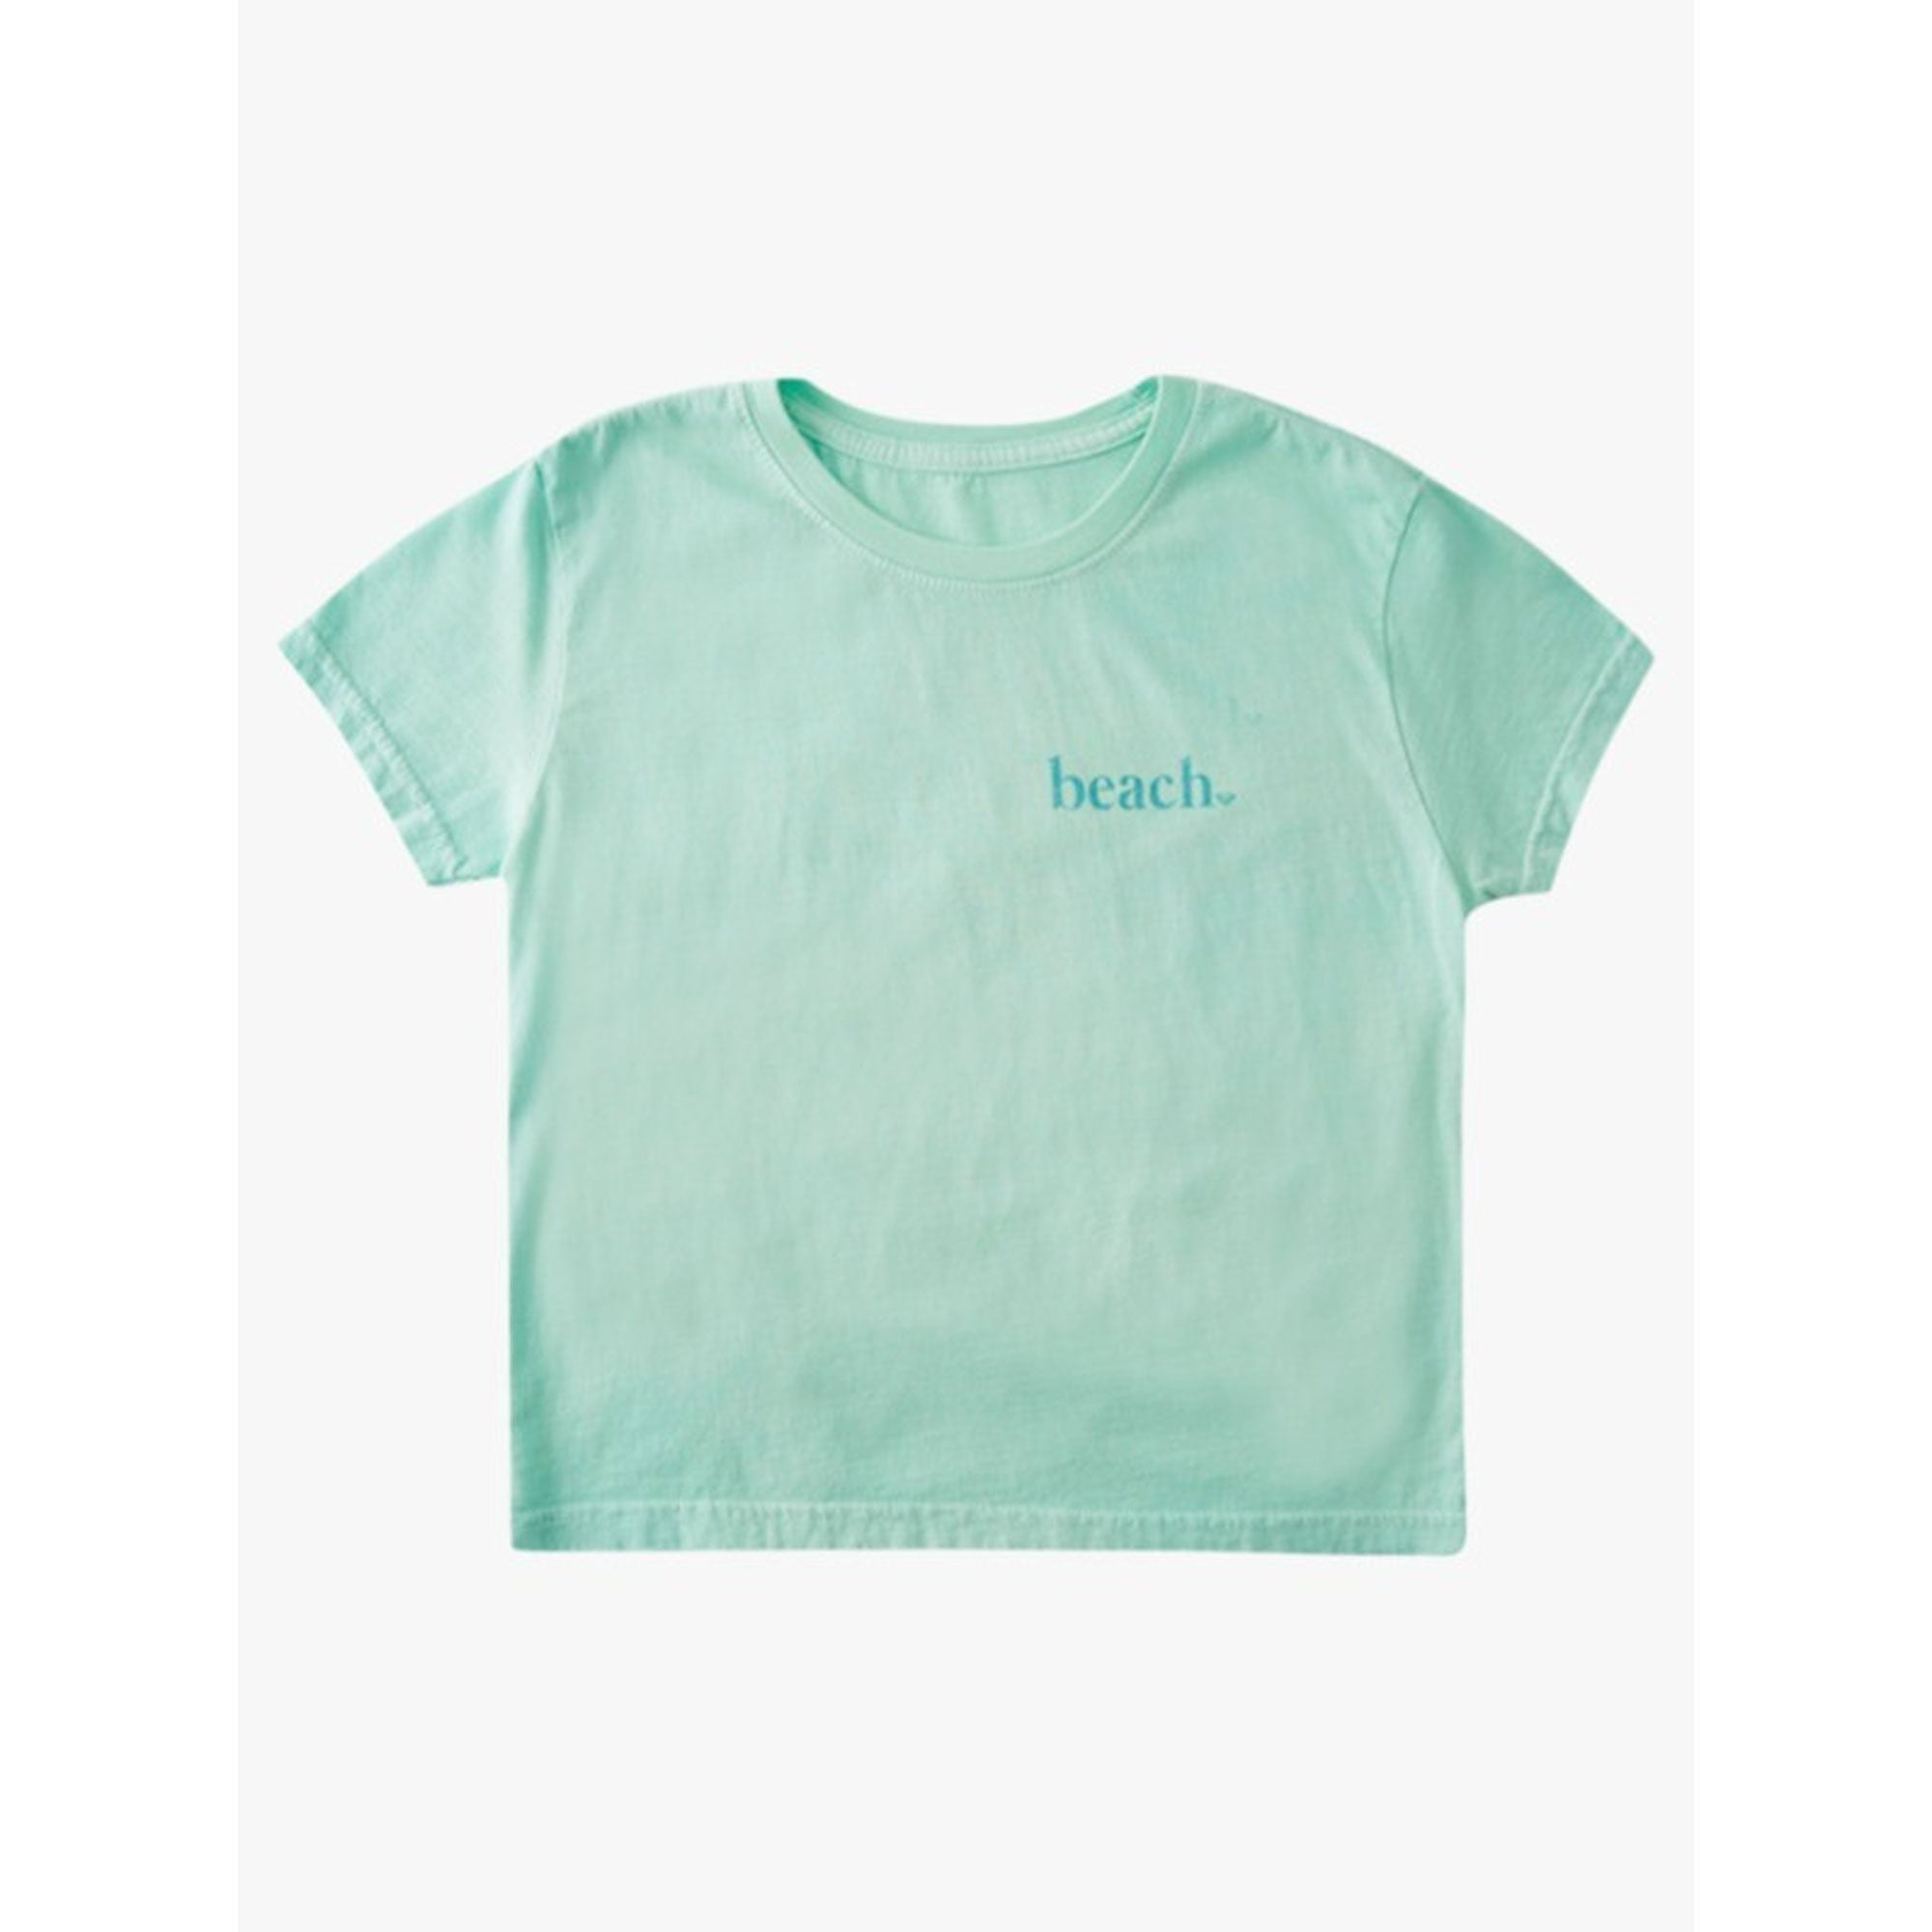 Roxy Beach Youth Girl's T-Shirt